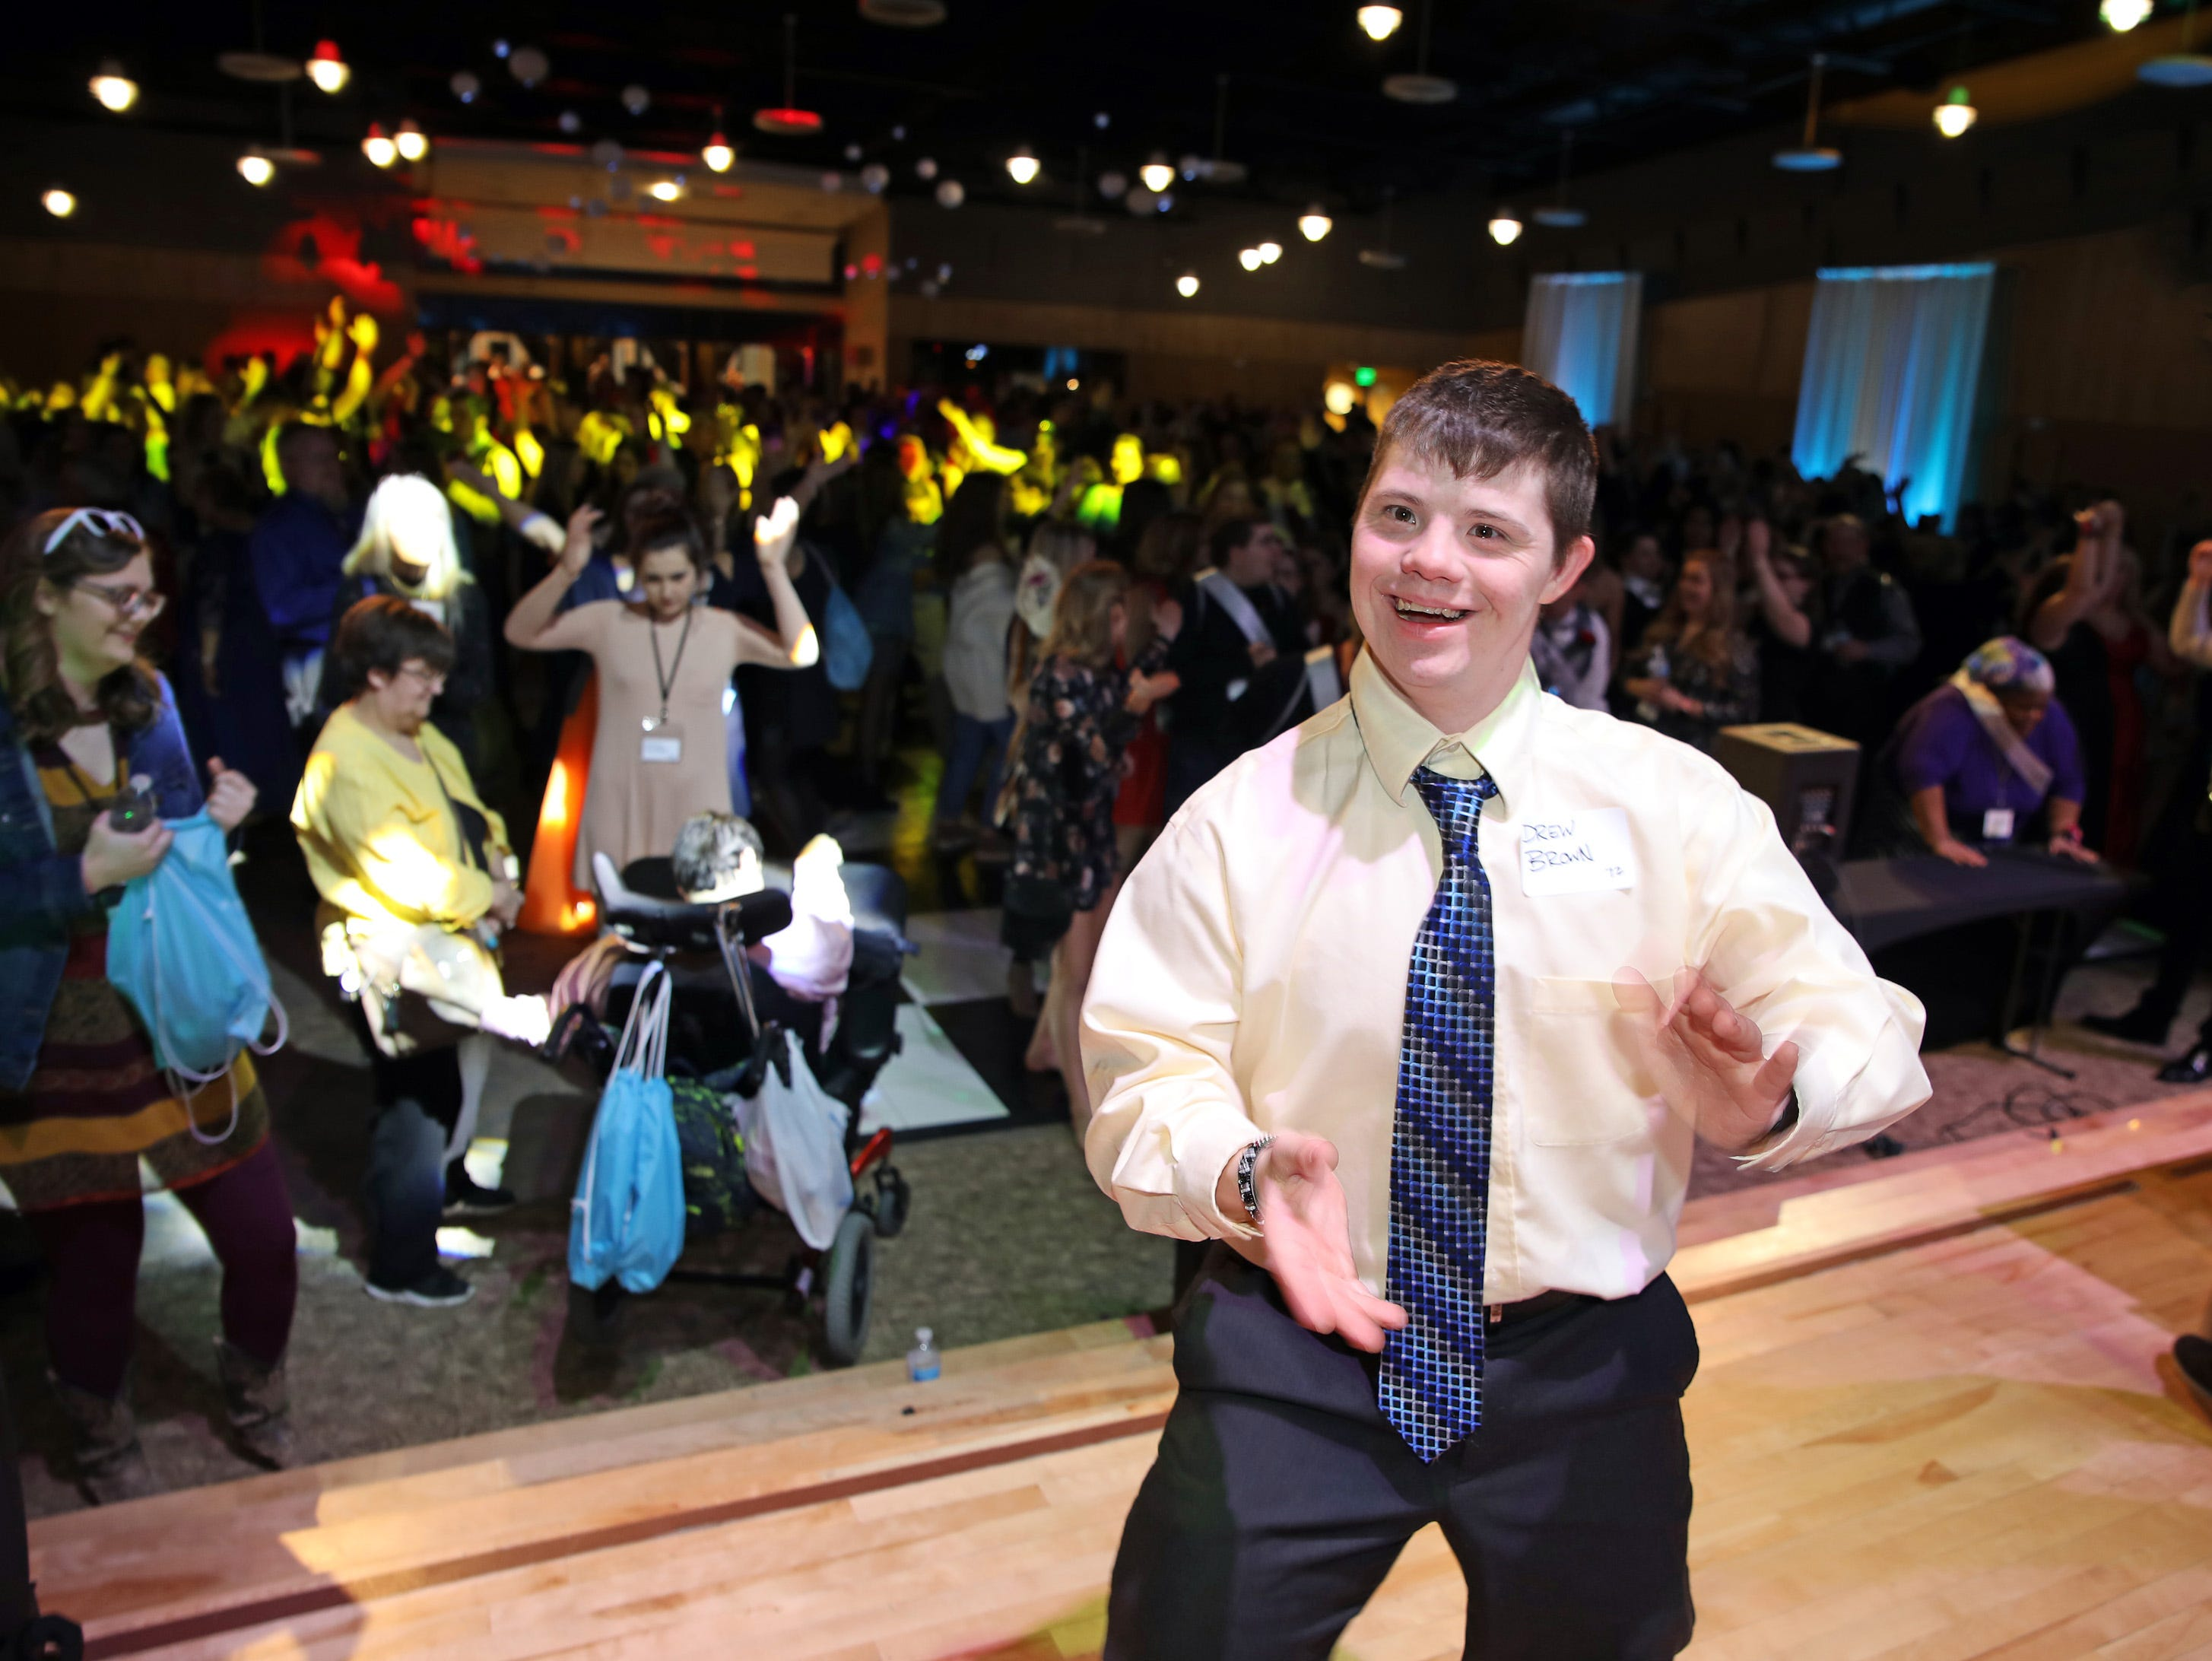 Drew Brown of Ankeny enjoys dancing at the Night to Shine event at Prairie Ridge Church in Ankeny on Friday, Feb. 8, 2019. Sponsored by the Tim Tebow Foundation, the event for adults with special needs features a prom-like atmosphere with dancing, limo rides, food and more.